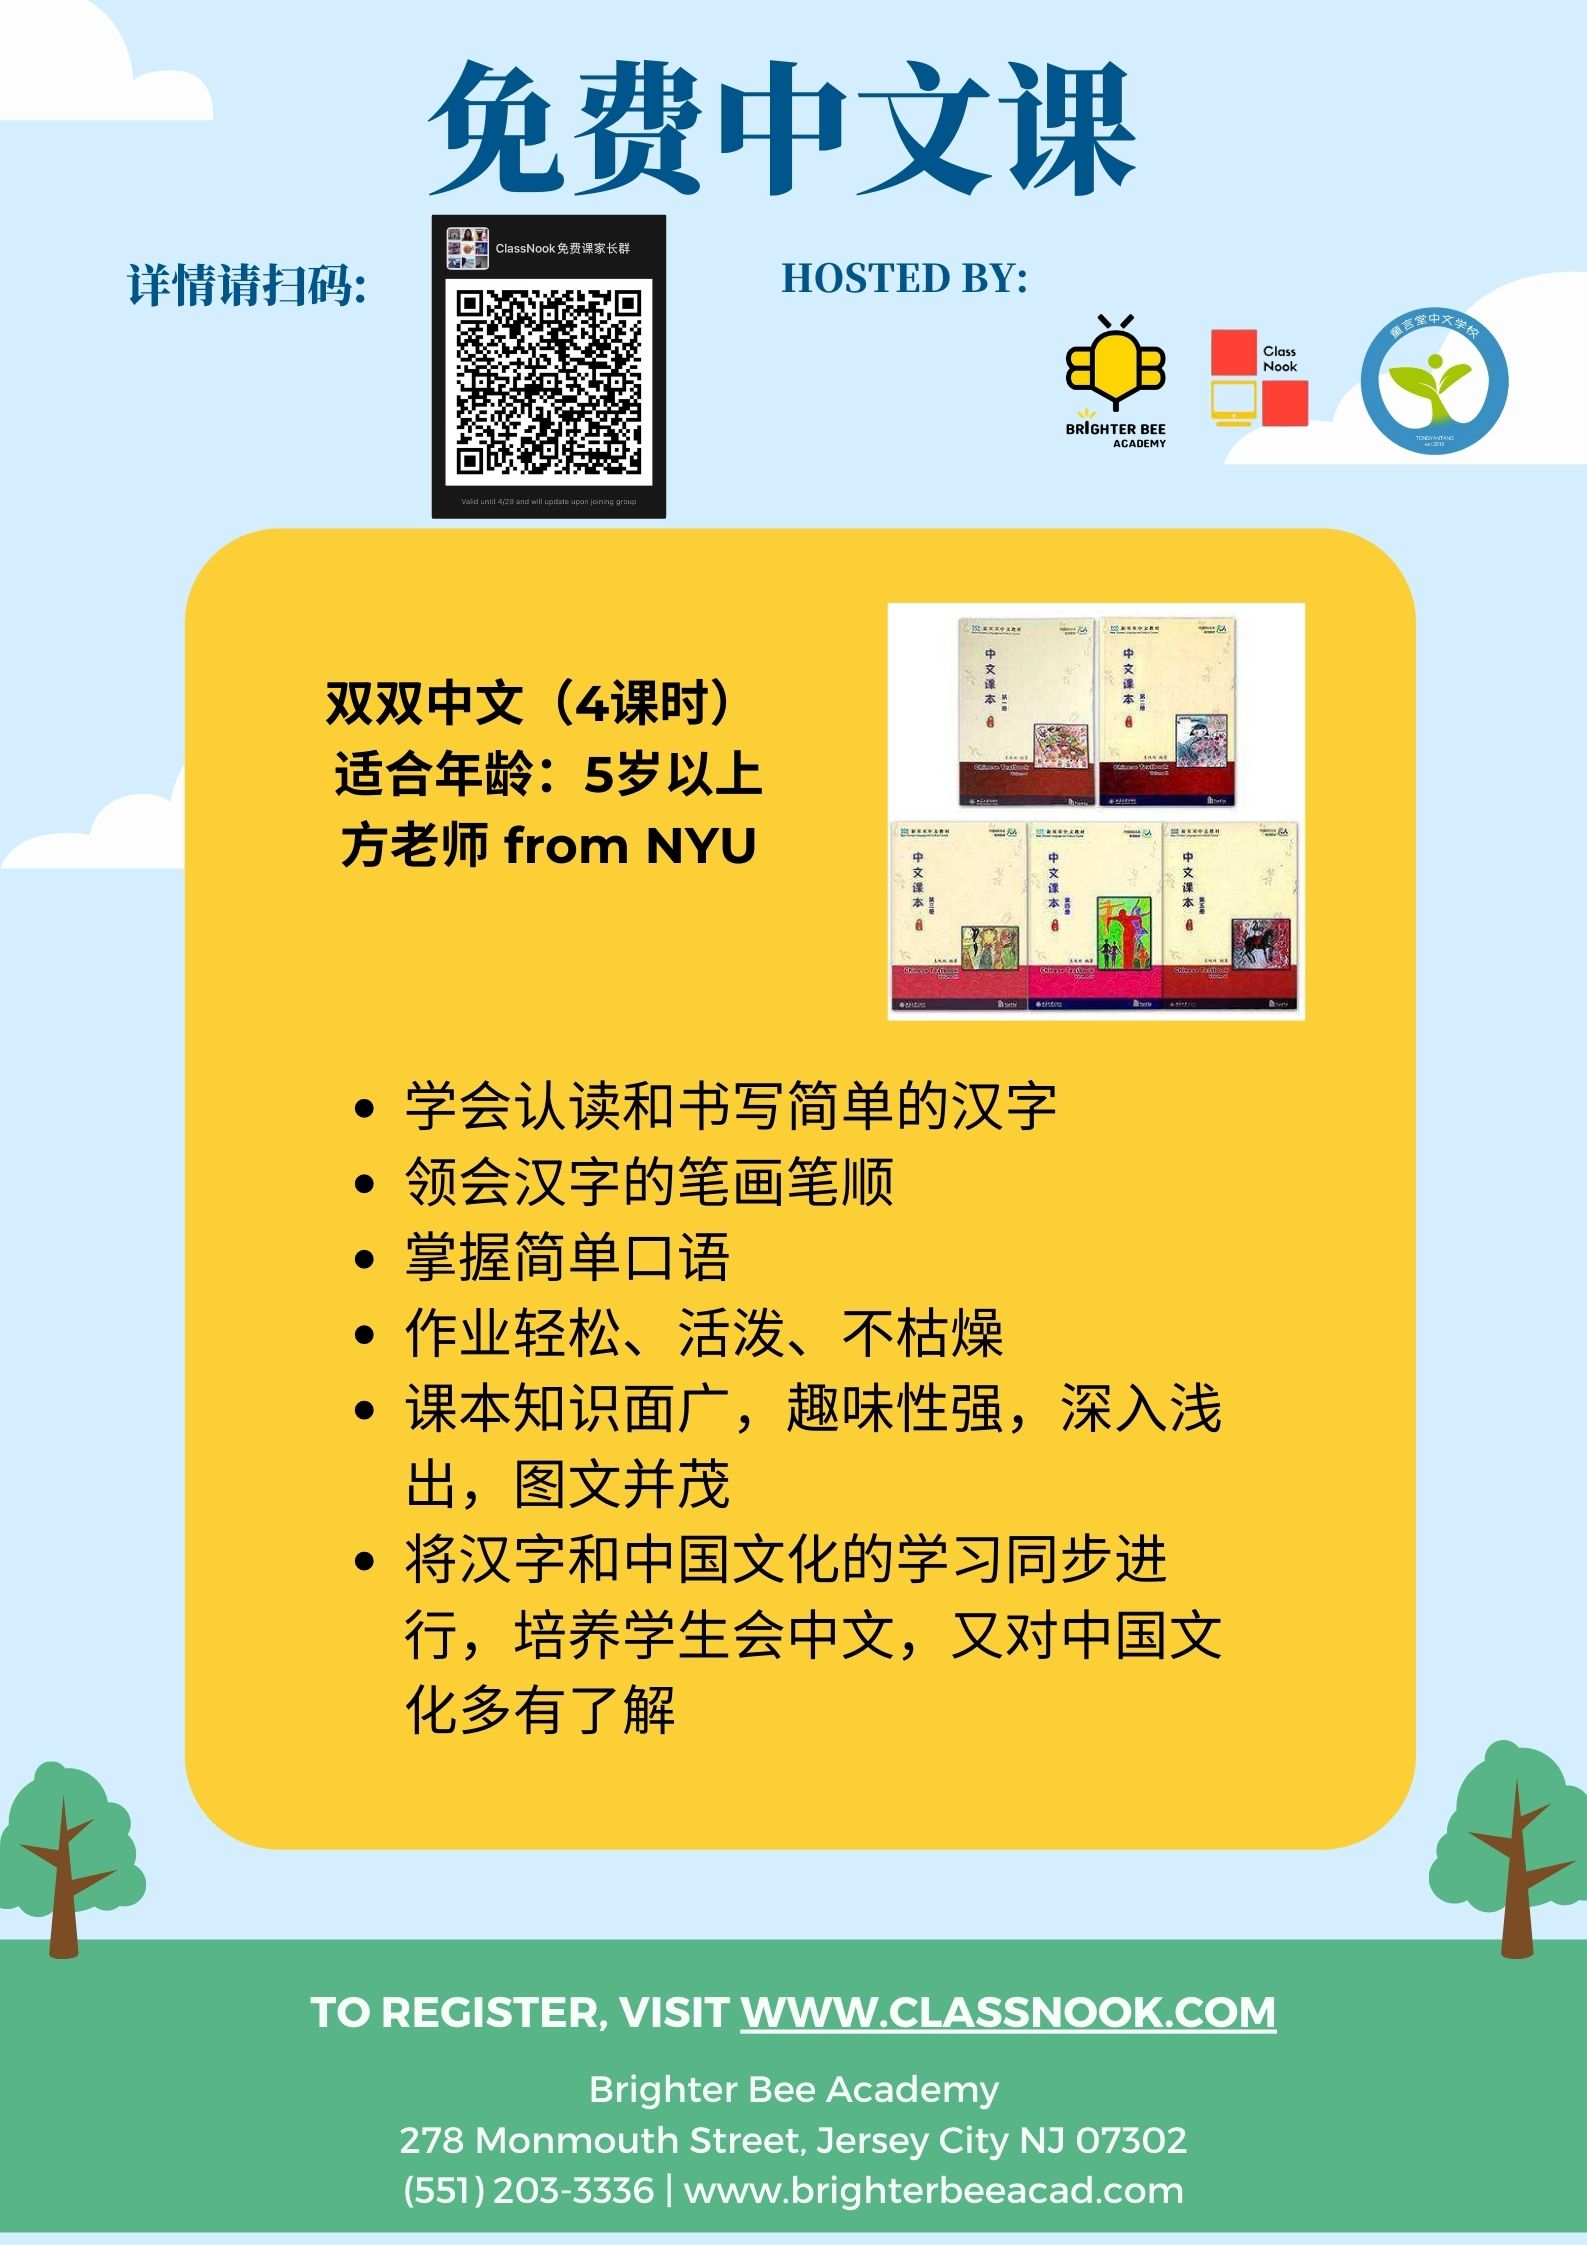 Copy of BB Course Posters 的複本